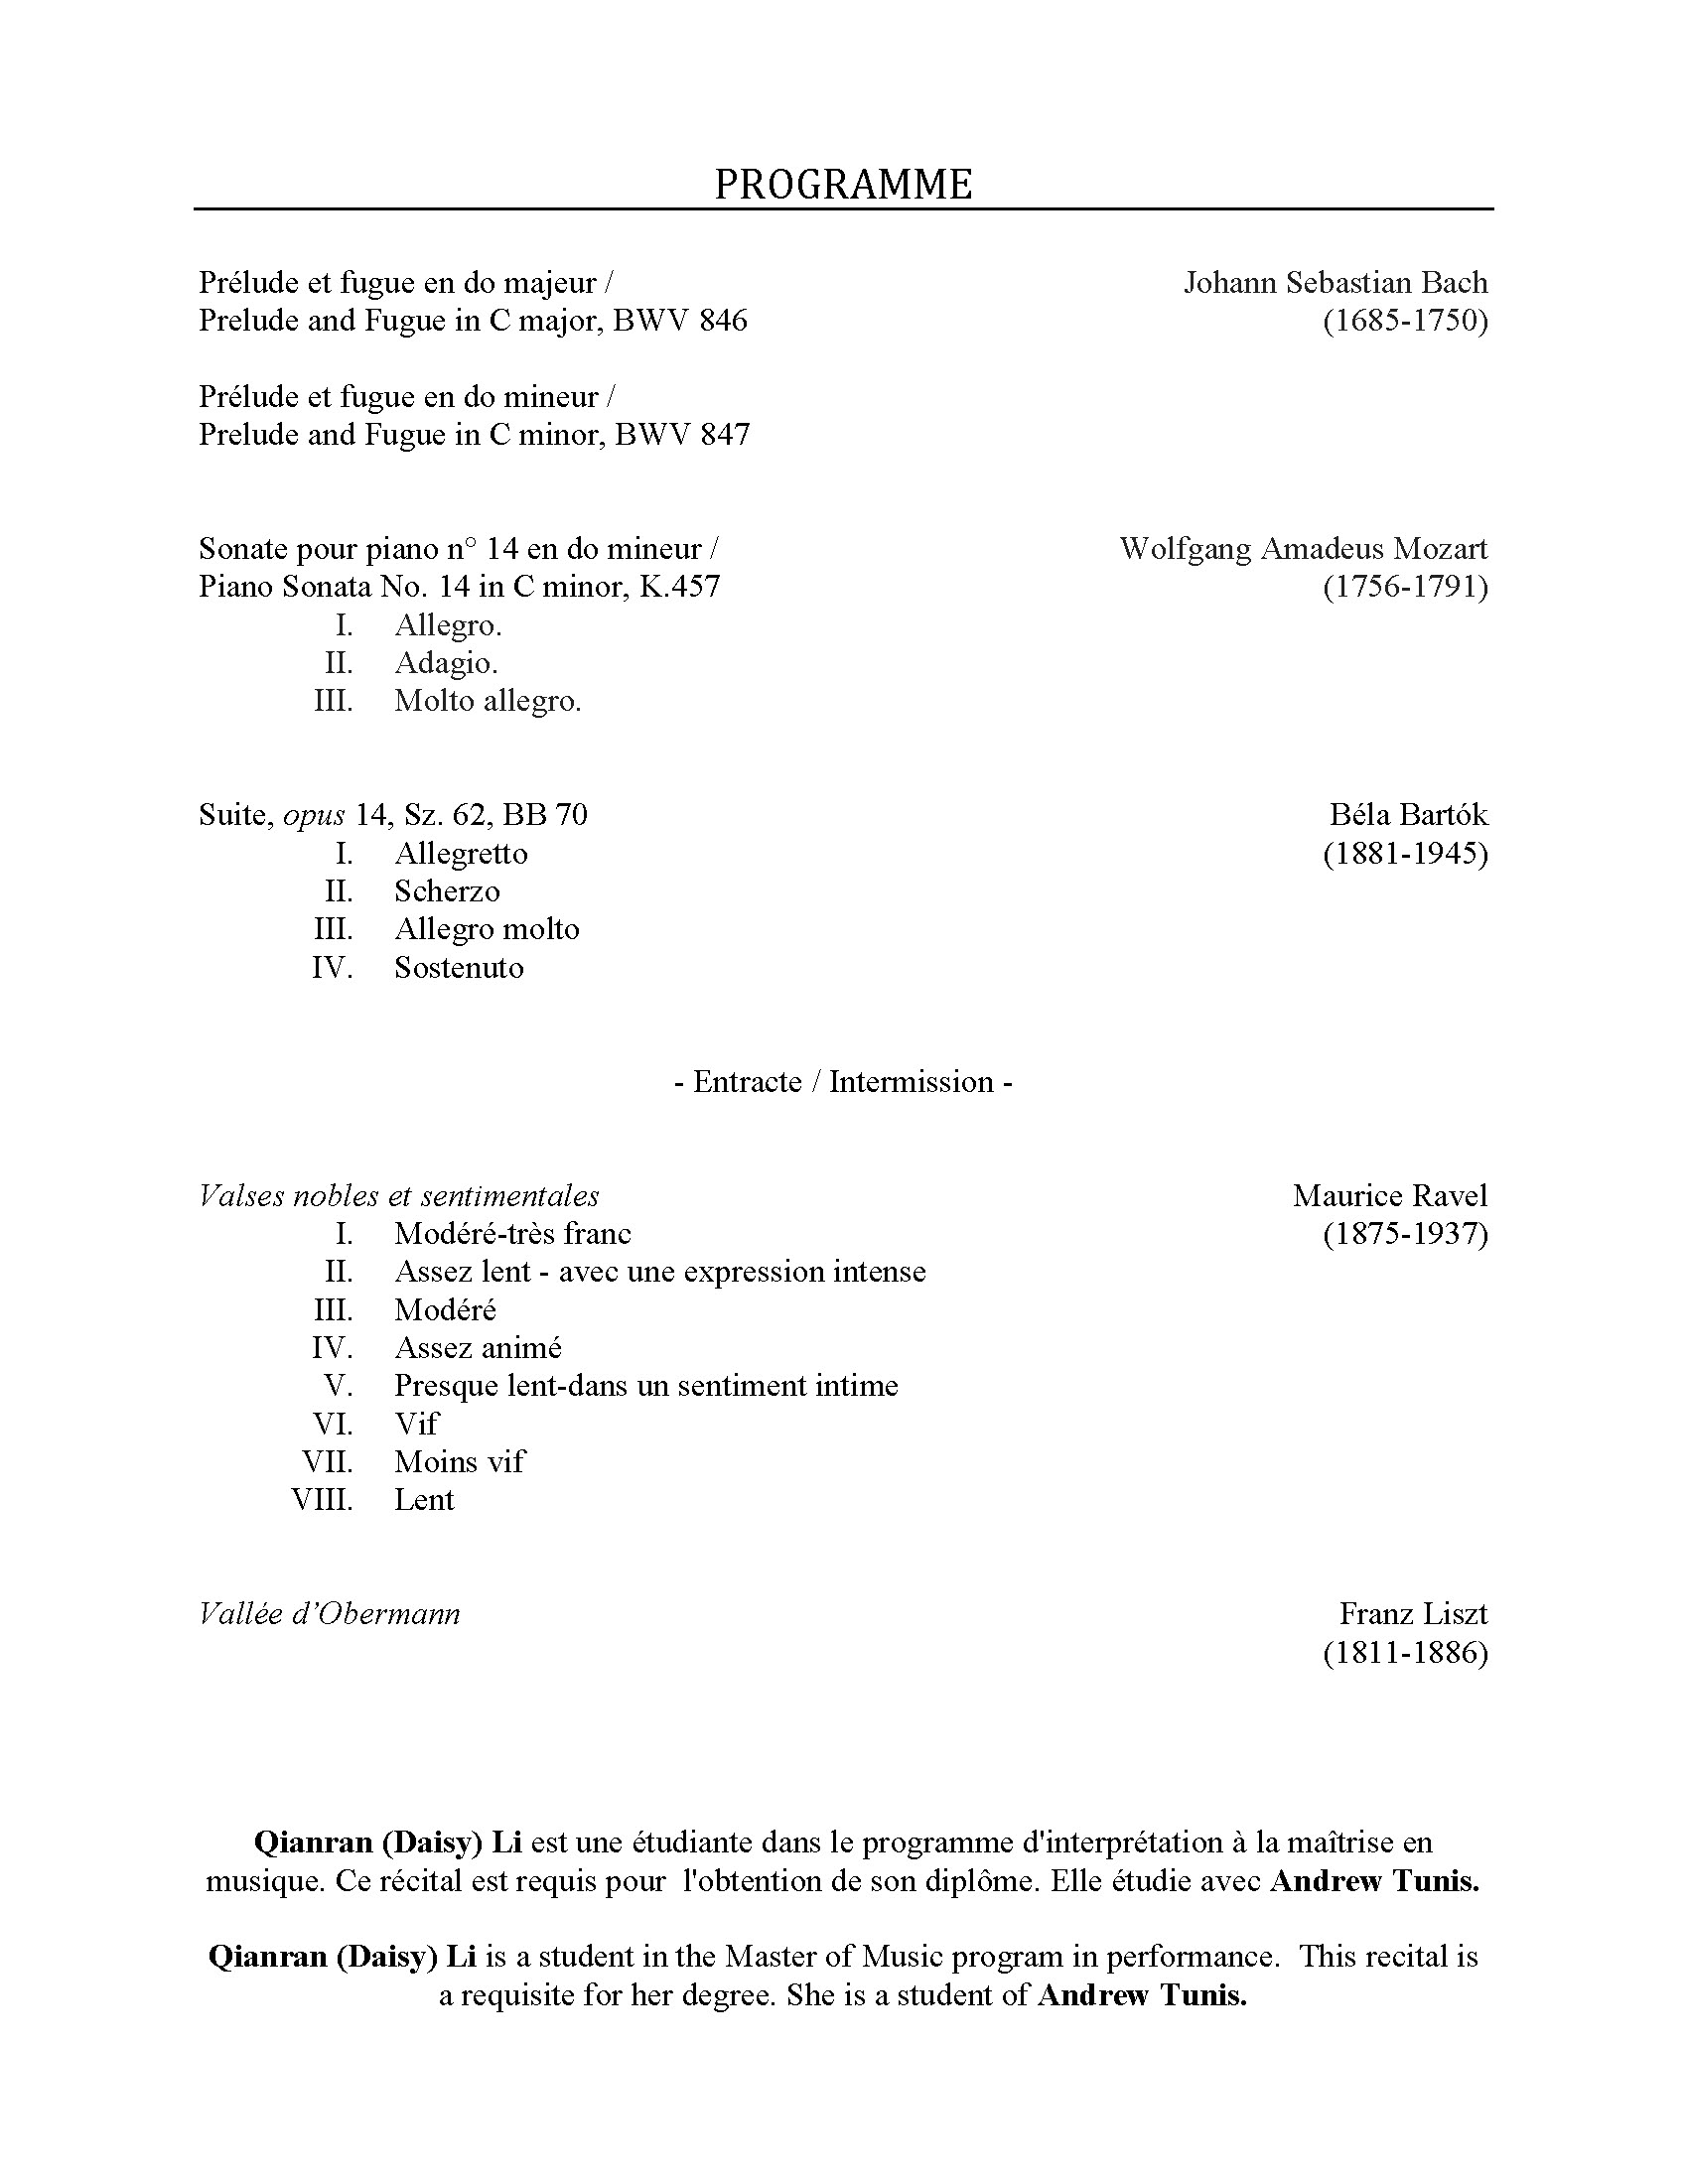 Recital program for Daisy Li, p. 2